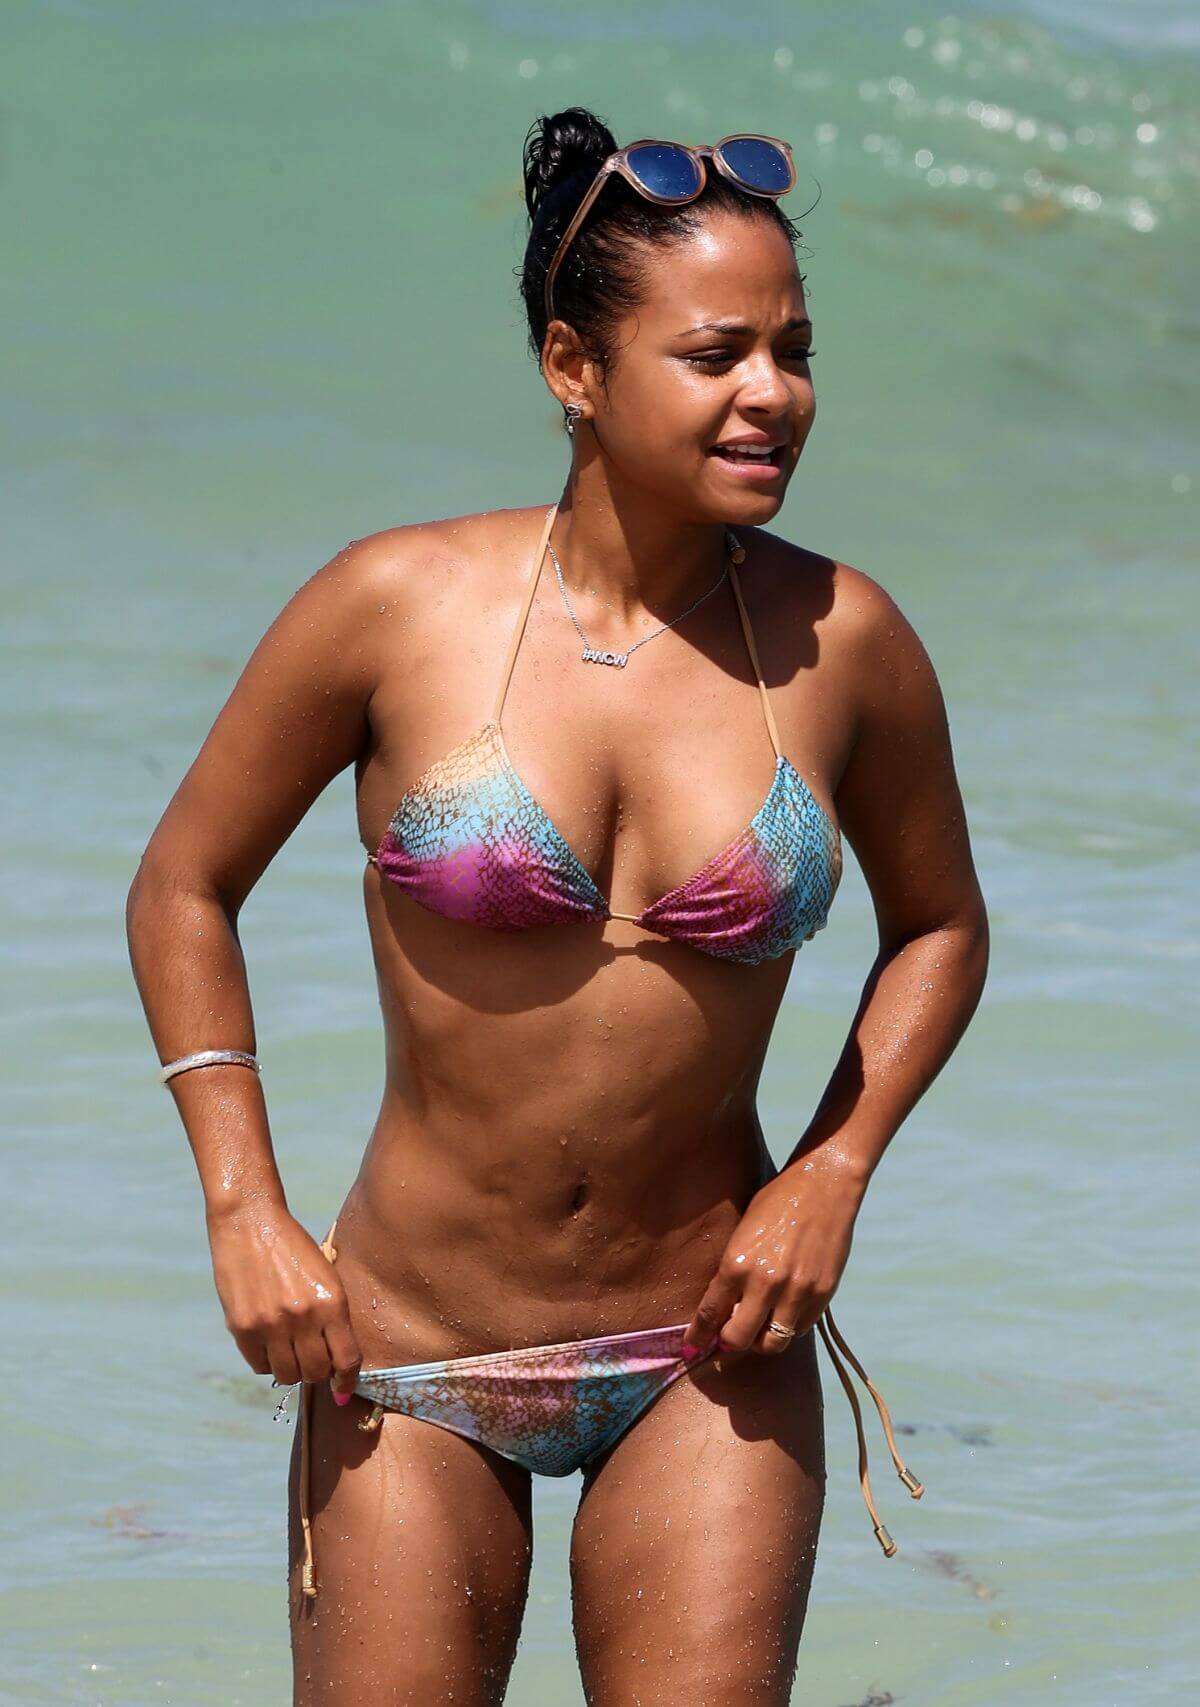 CHRISTINA MILIAN sexy bikini photo